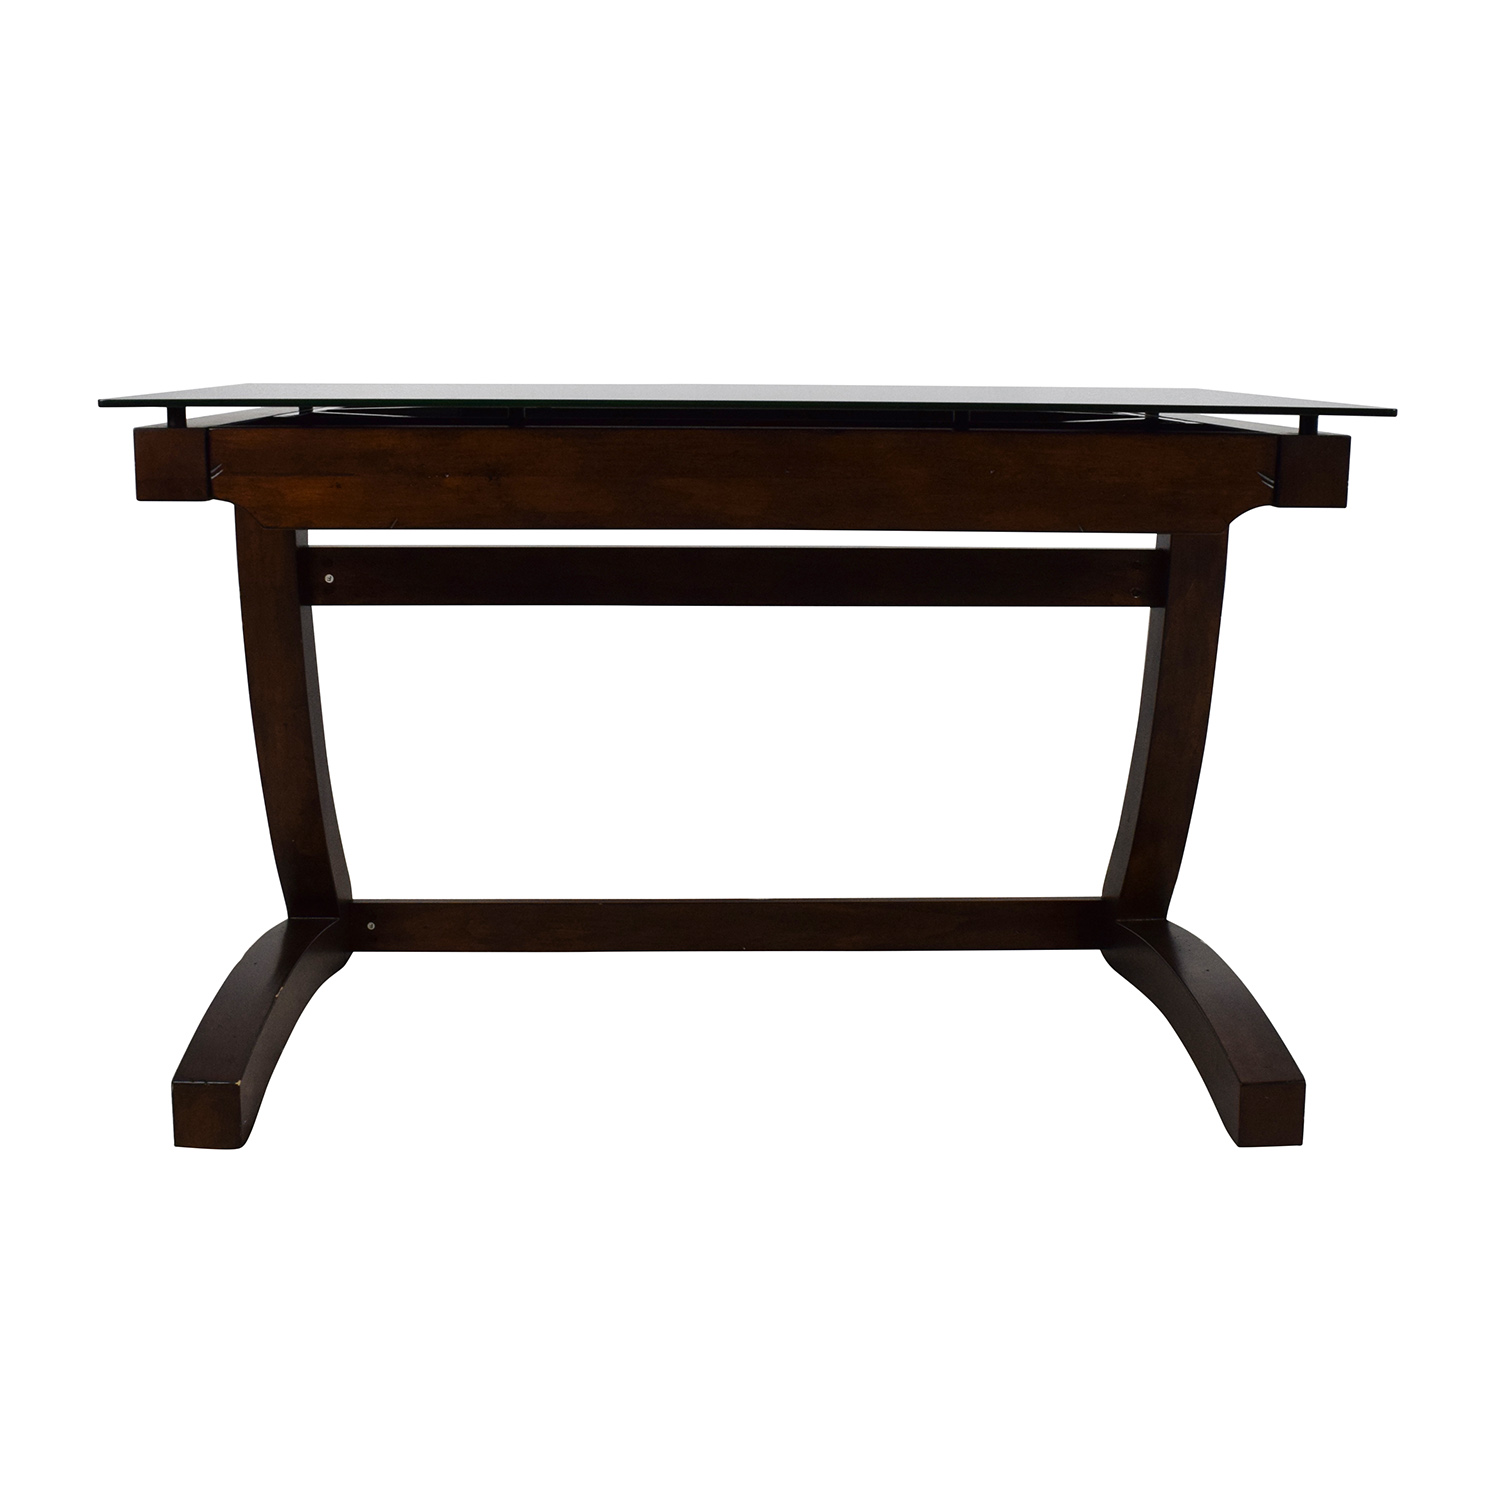 Dania Coffee Table Perfect Dania Dining Table On Tables Dania Rander Dania Tables Man ...